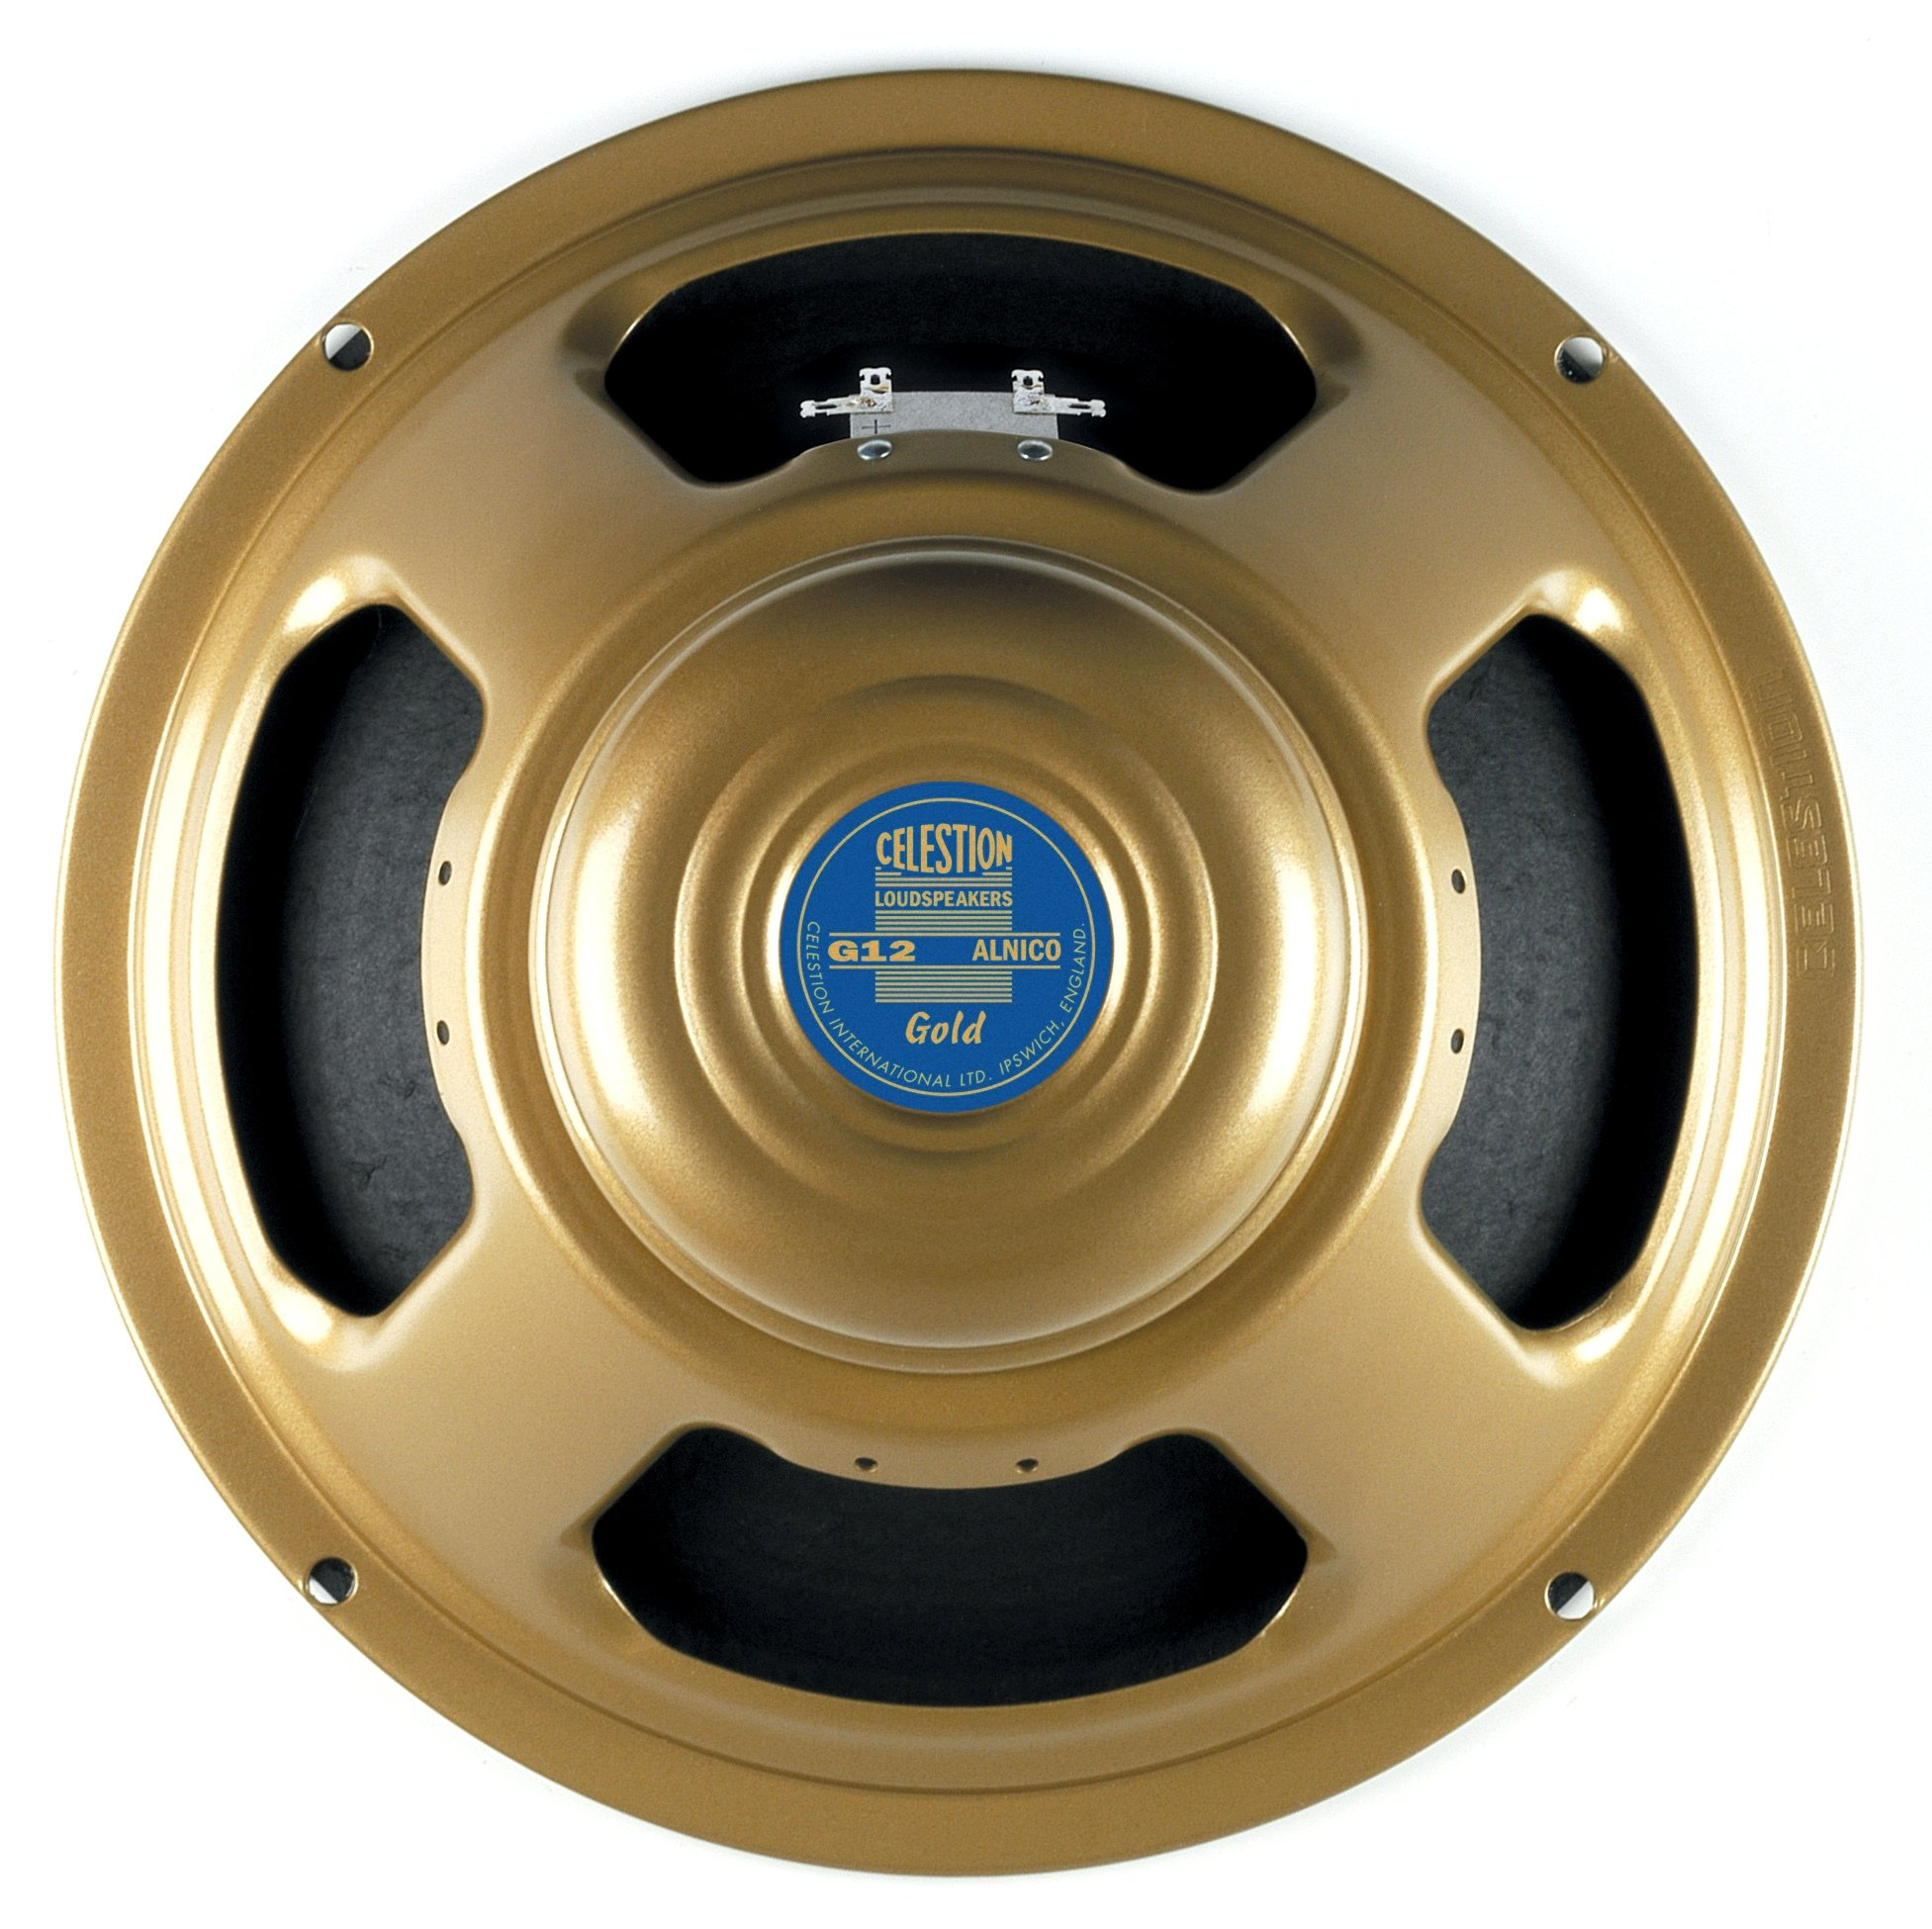 Celestion Gold Guitar Speaker, 15 Ohm